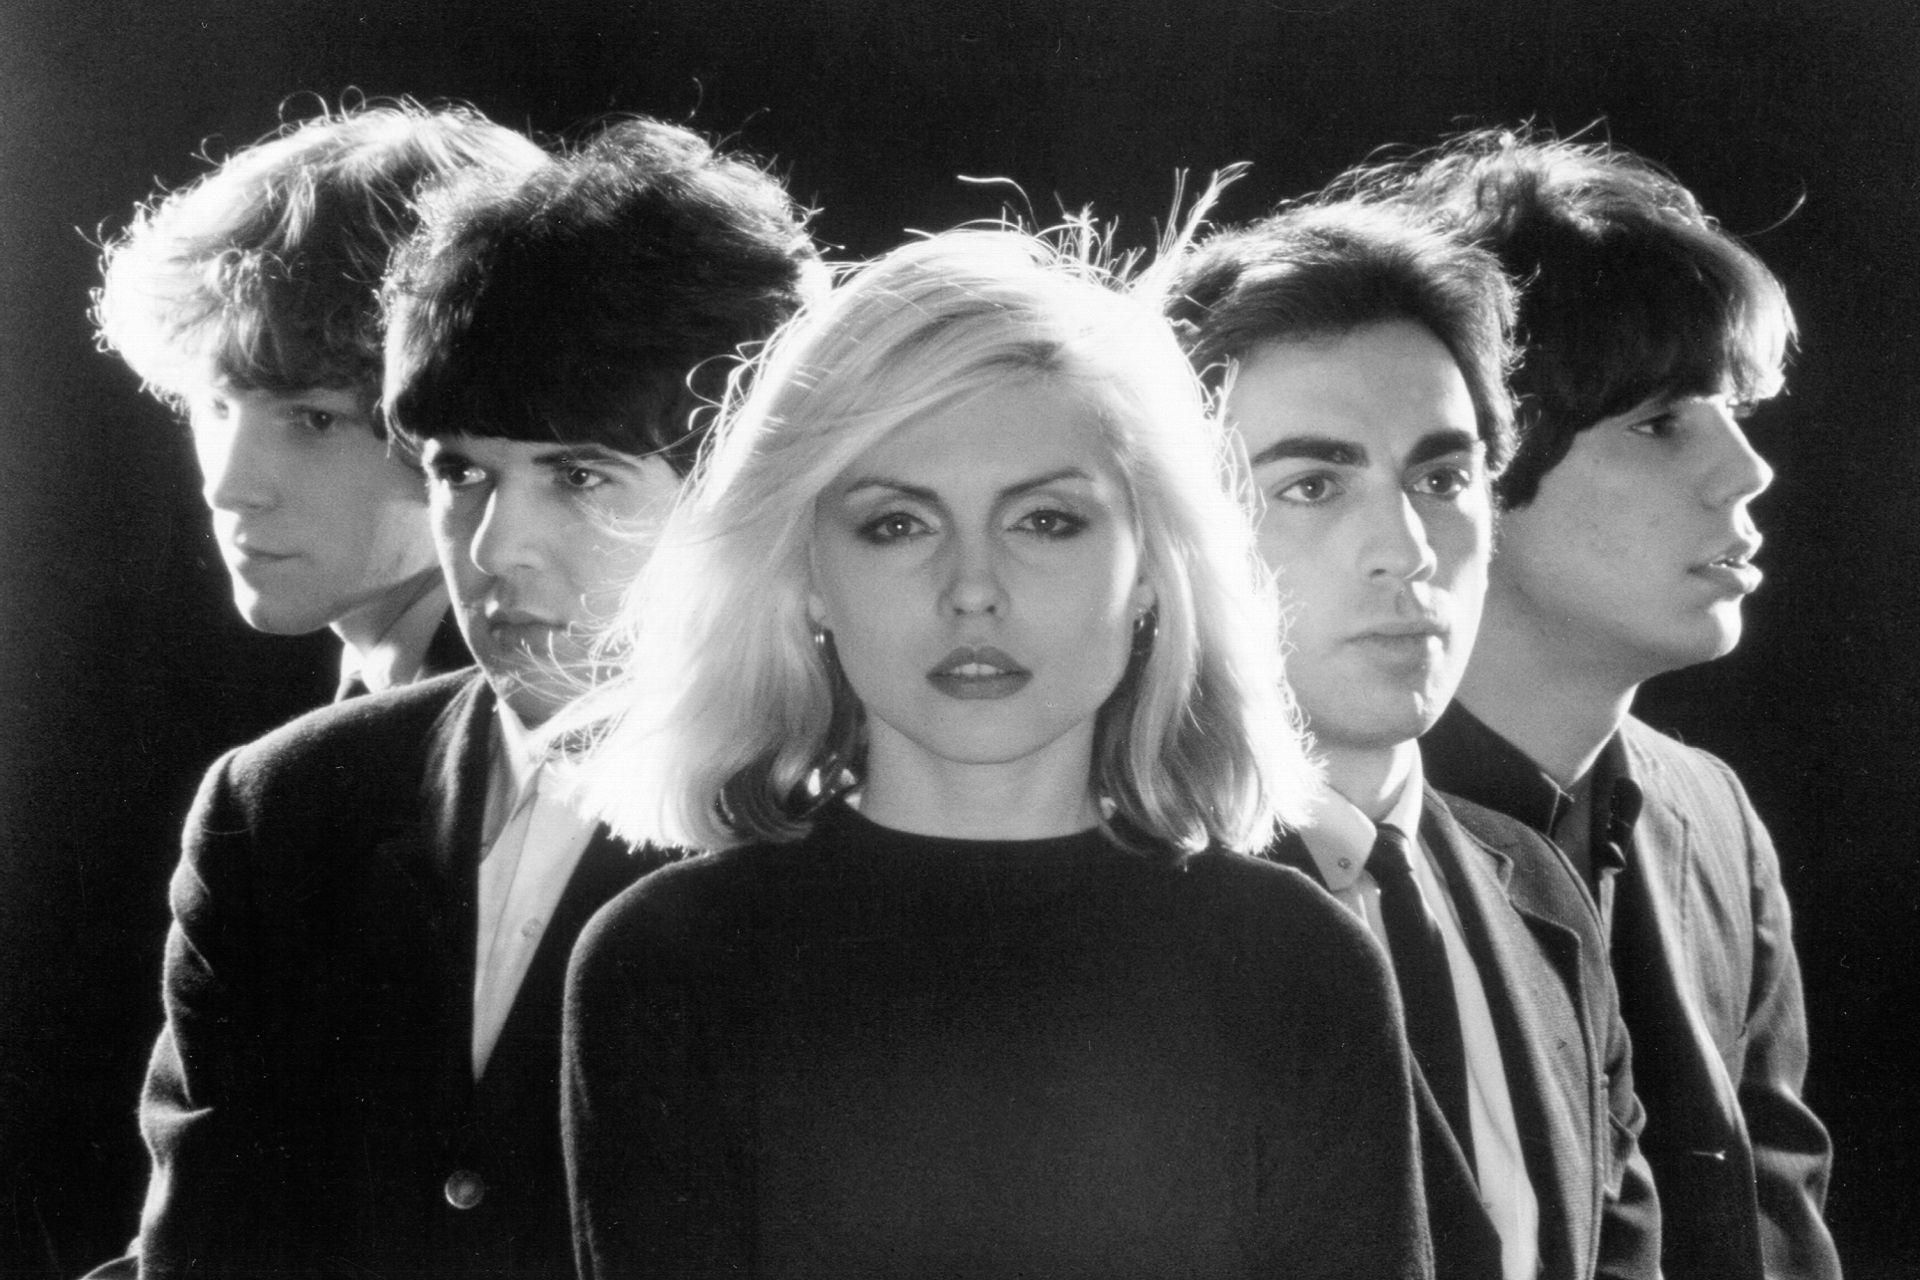 Debbie Harry: amazing photos of the Blondie singer as a school girl, Playboy Bunny and more